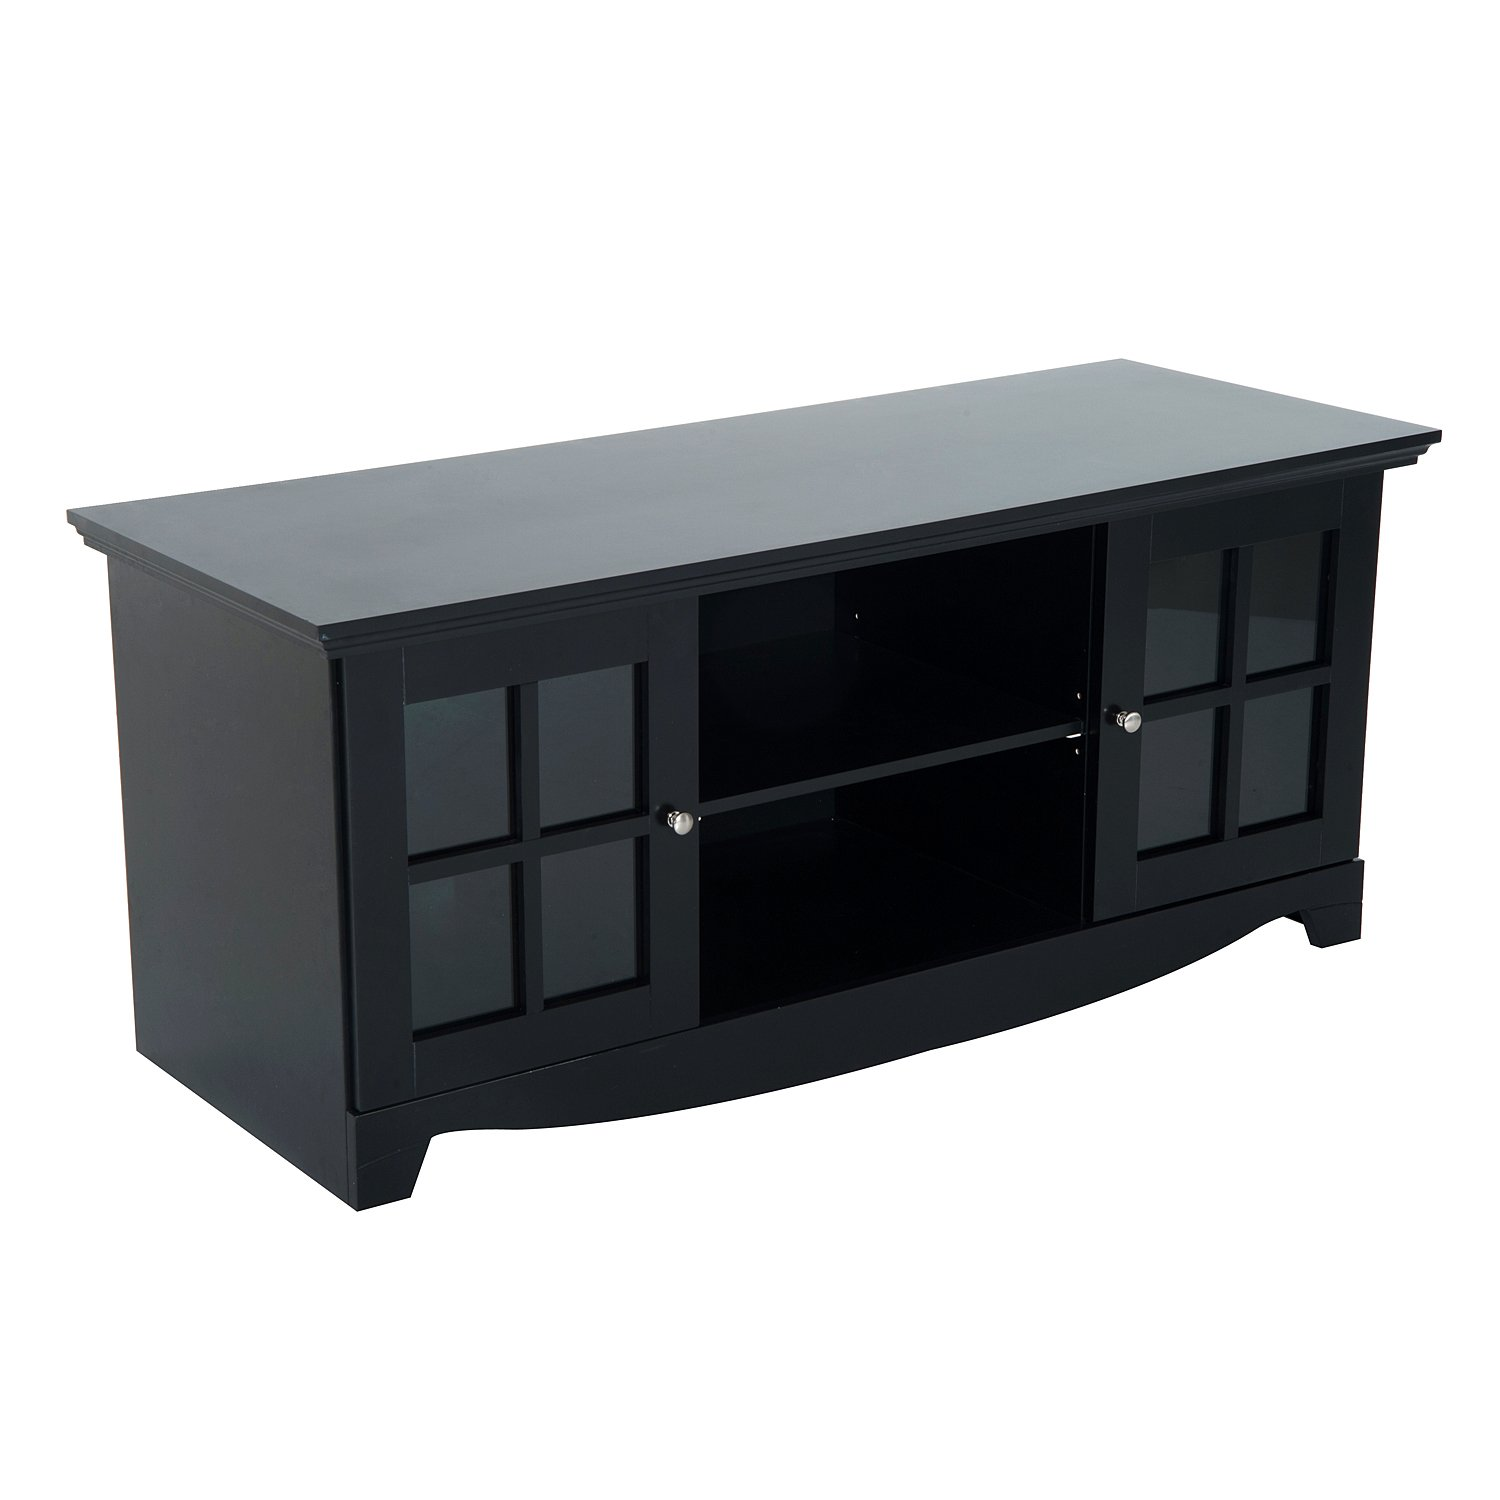 HomCom 56'' TV Stand Entertainment Center Storage Console Cabinet - Black